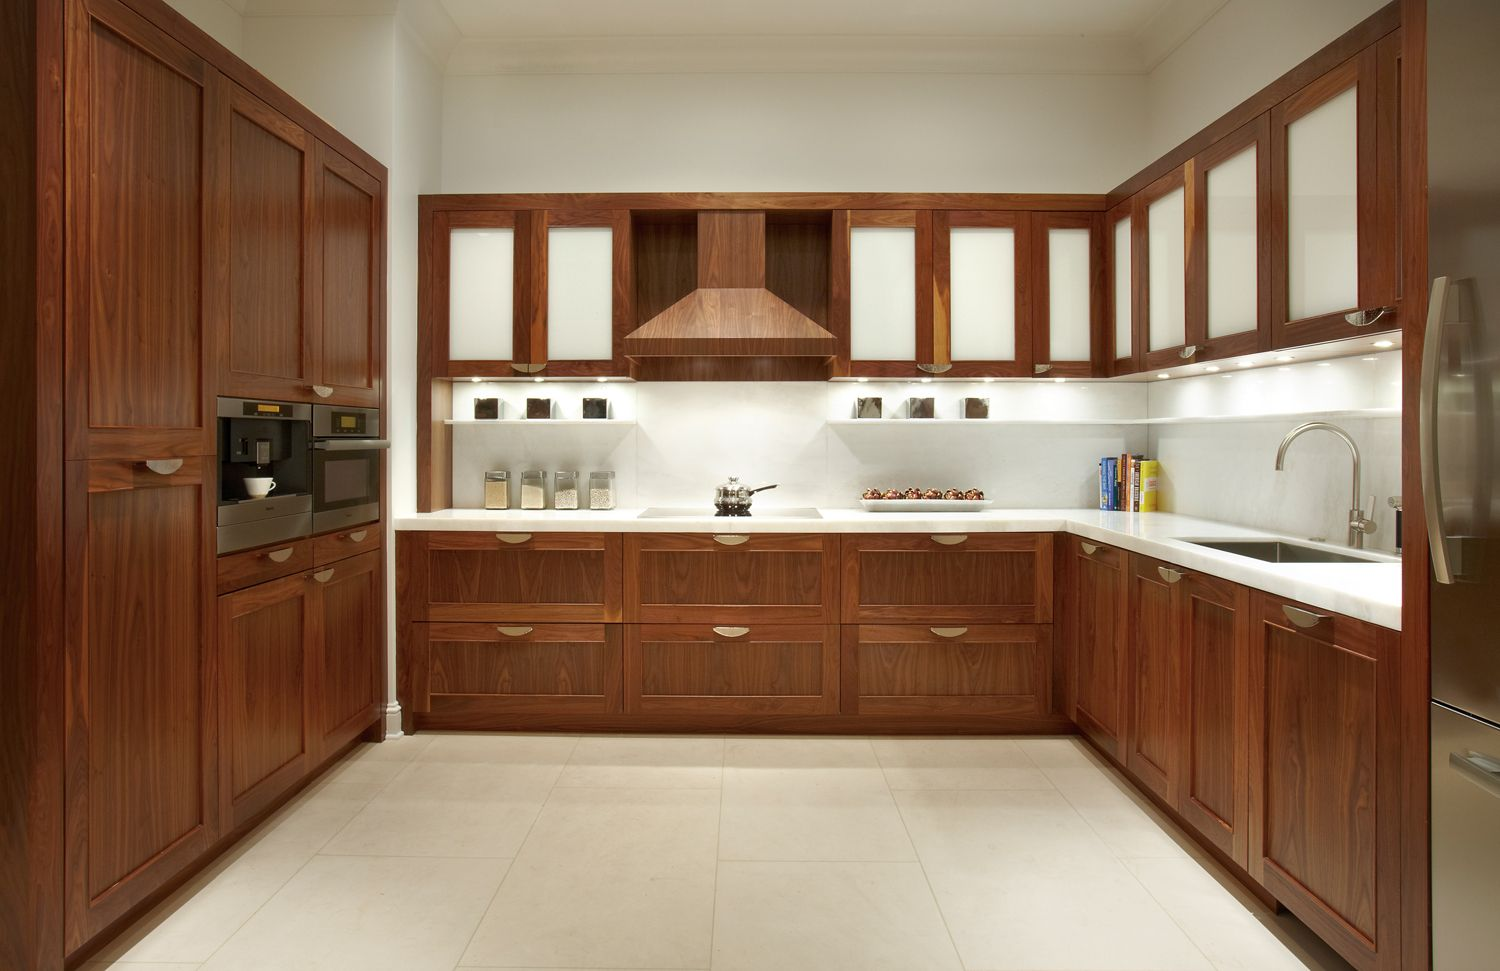 Contemporary Kitchen Cabinets plain & fancy - contemporary kitchen cabinets | plain & fancy